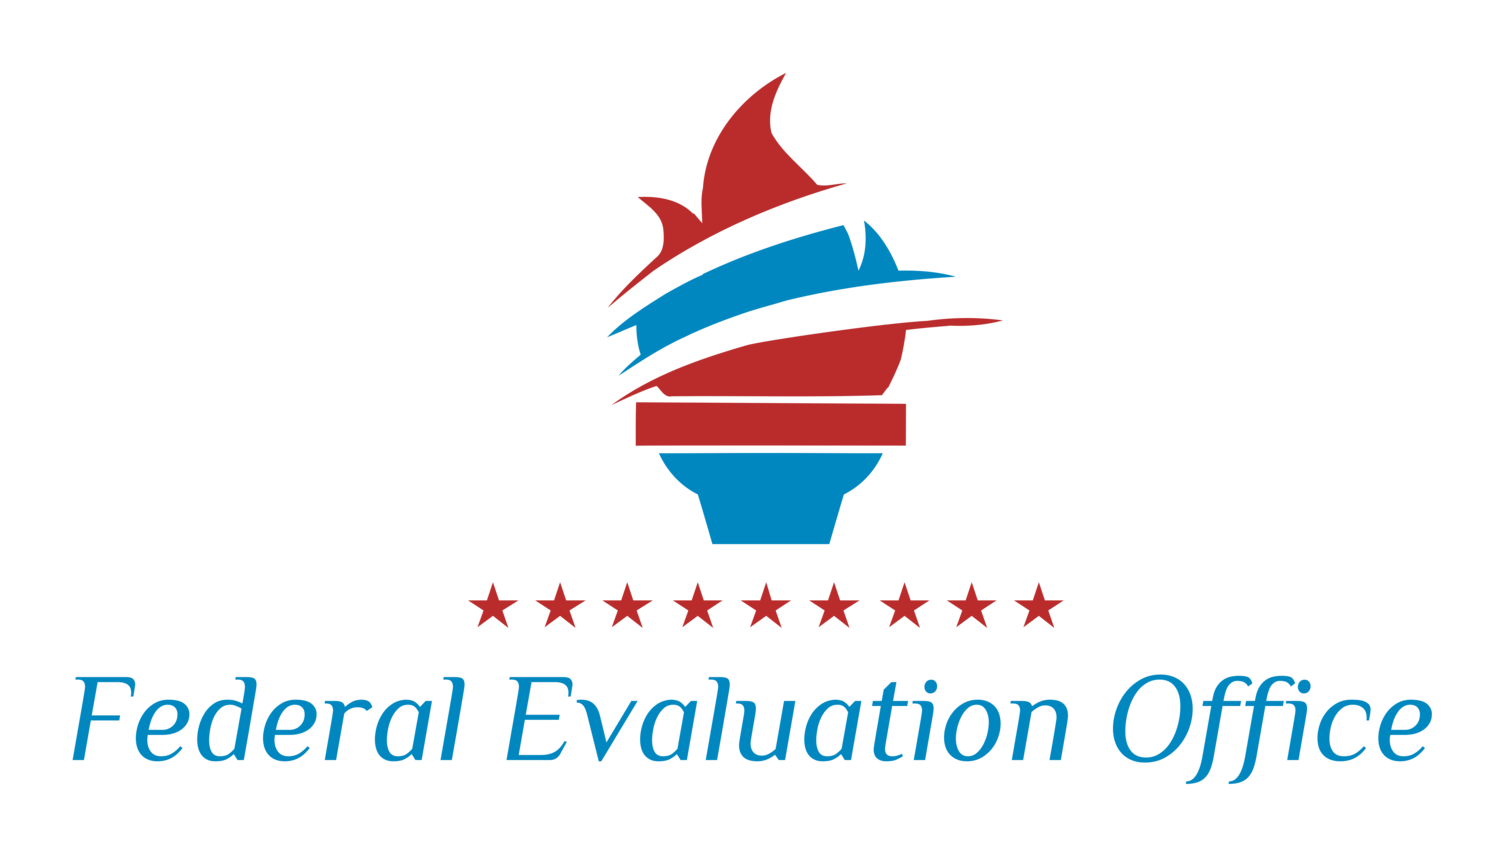 evaluation office